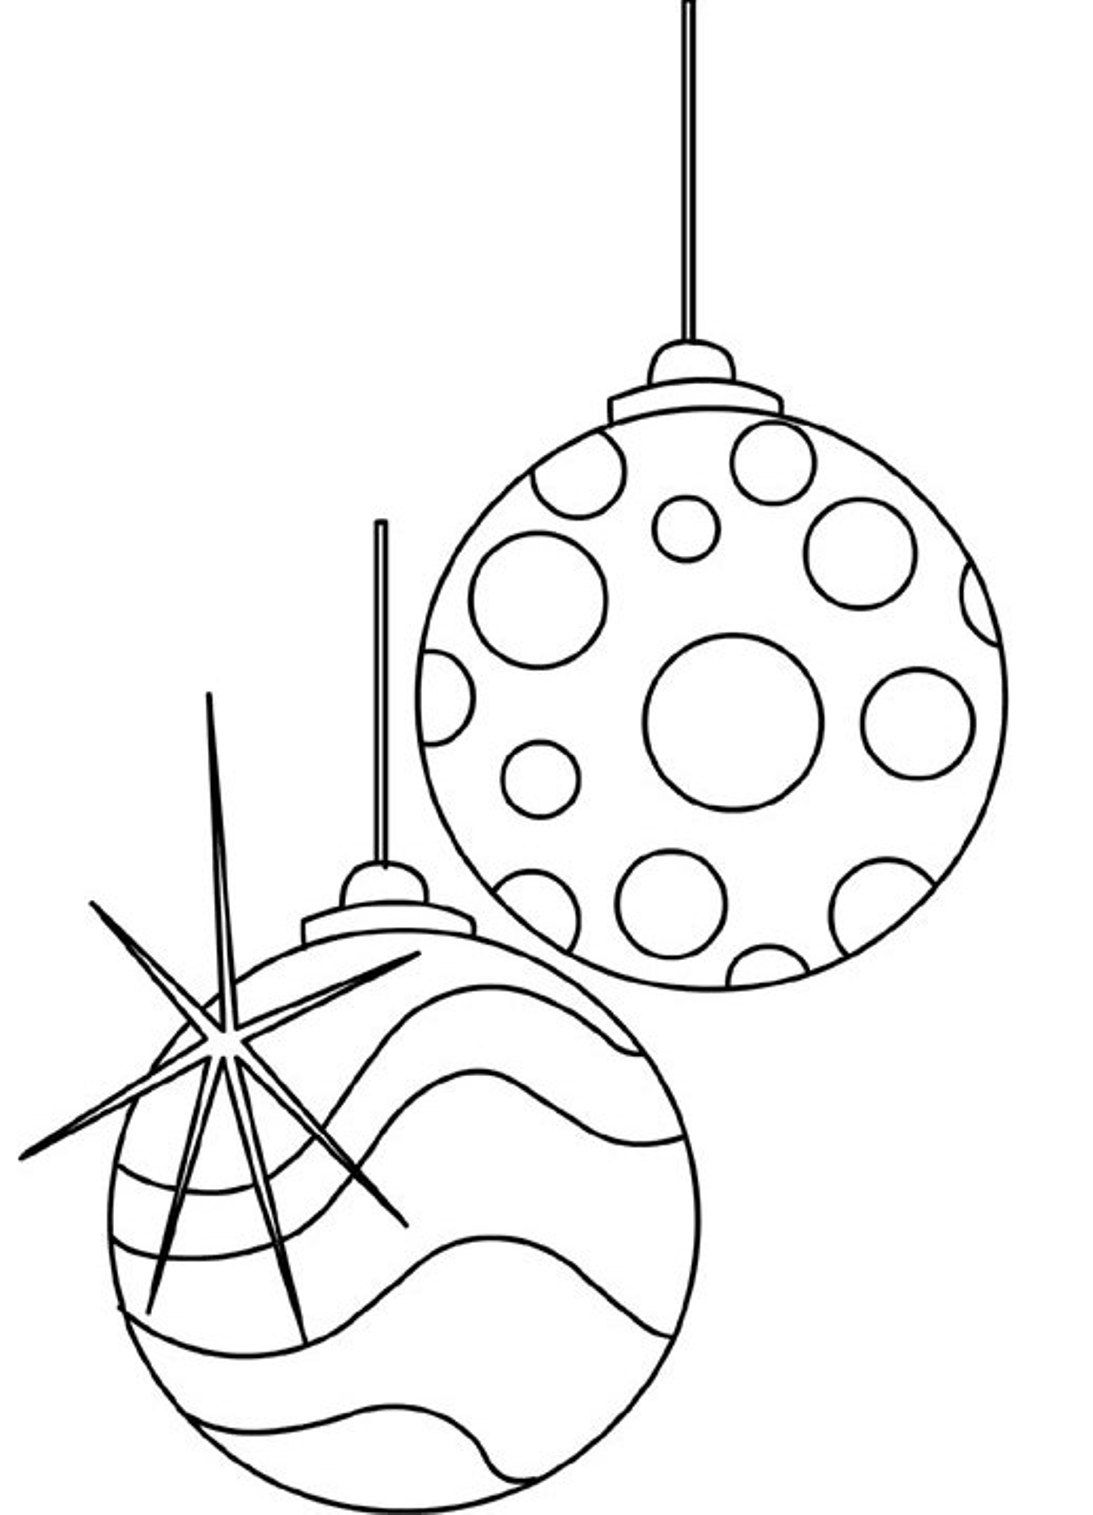 Christmas Ornaments Coloring Pages Printable Coloring Home Decorations Coloring Pages